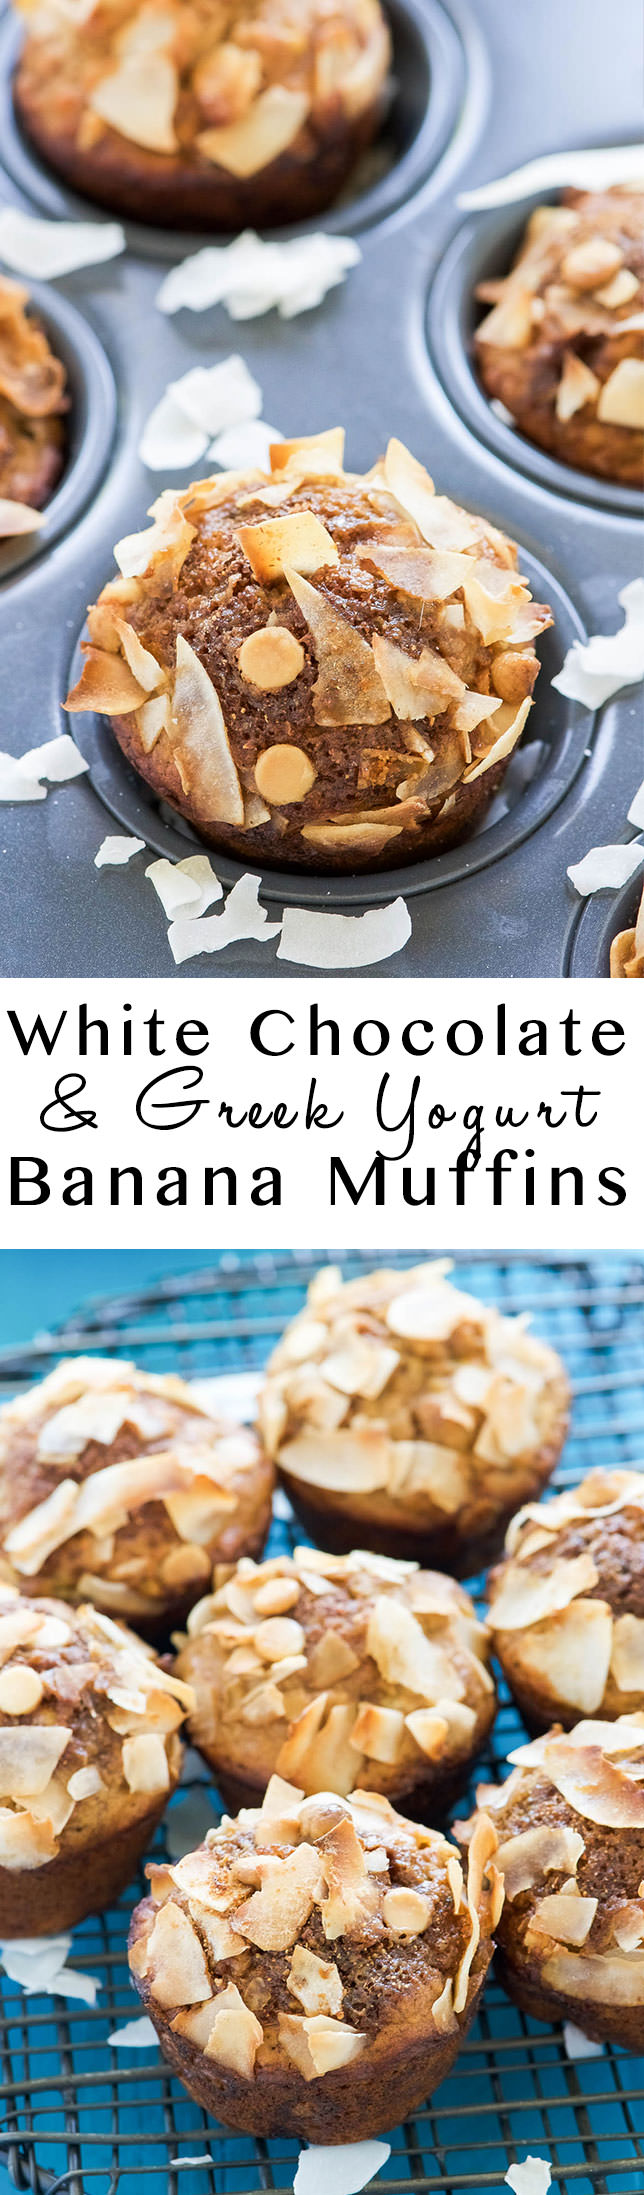 White Chocolate Greek Yogurt Banana Muffins - With Salt and Wit